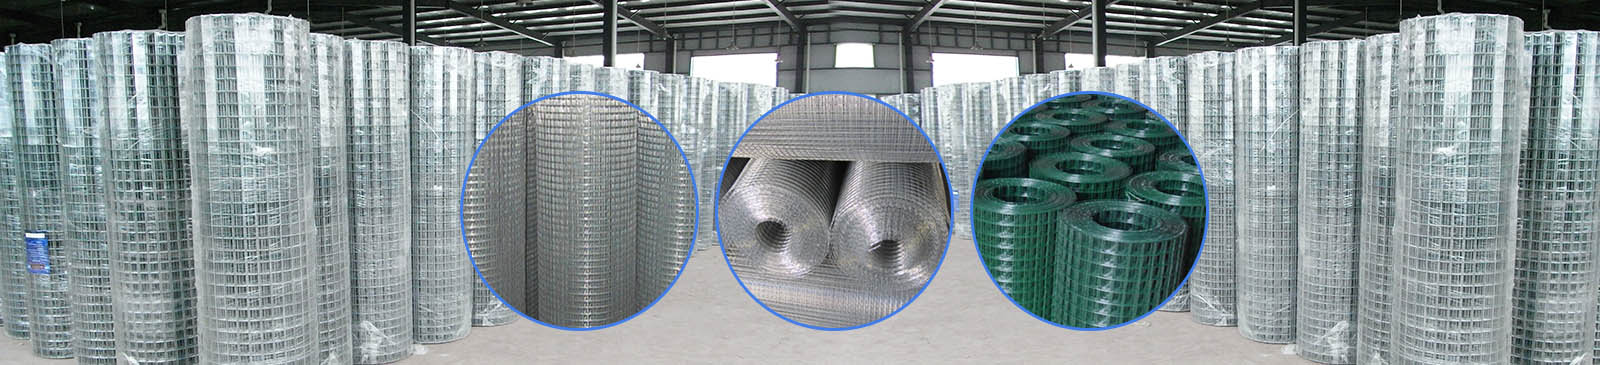 CBT-65 - galvanized expanded metal mesh,round perforated metal mesh ...